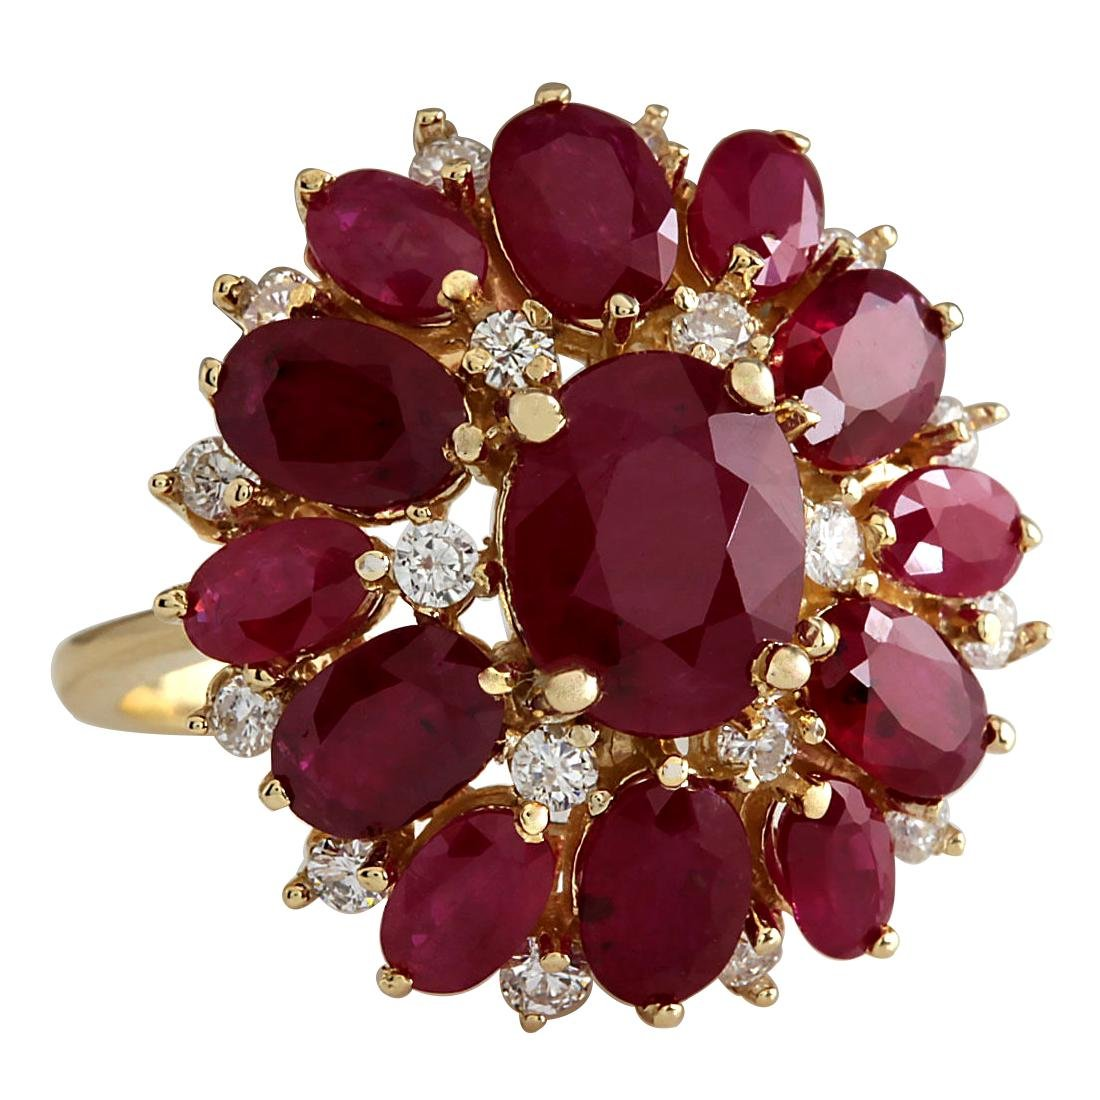 7.47CTW Natural Red Ruby And Diamond Ring 18K Solid - 2